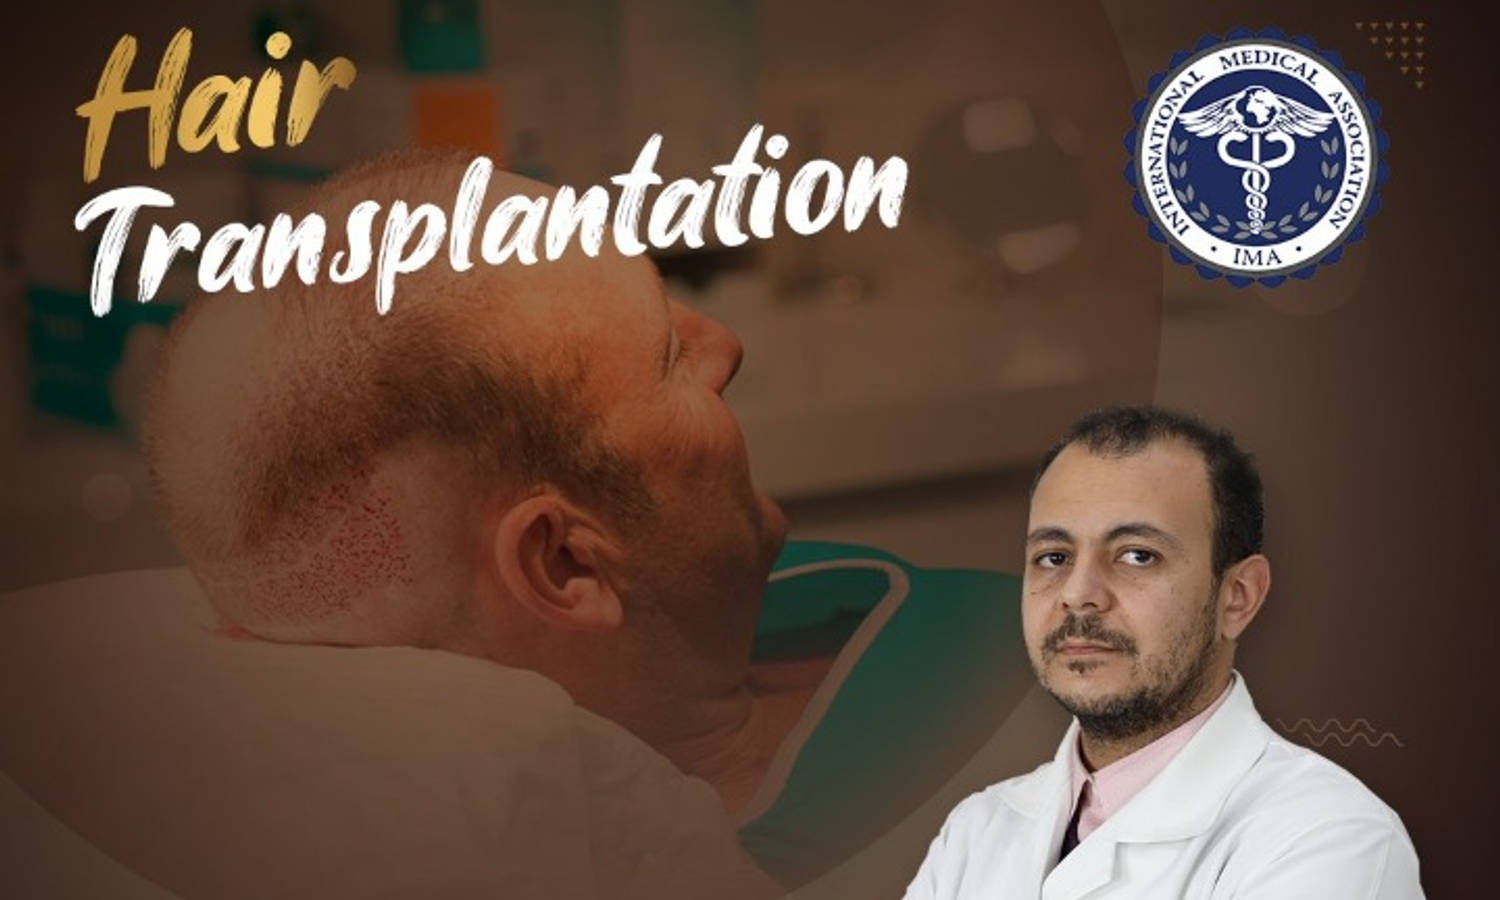 Hair Transplantation Professional Diploma